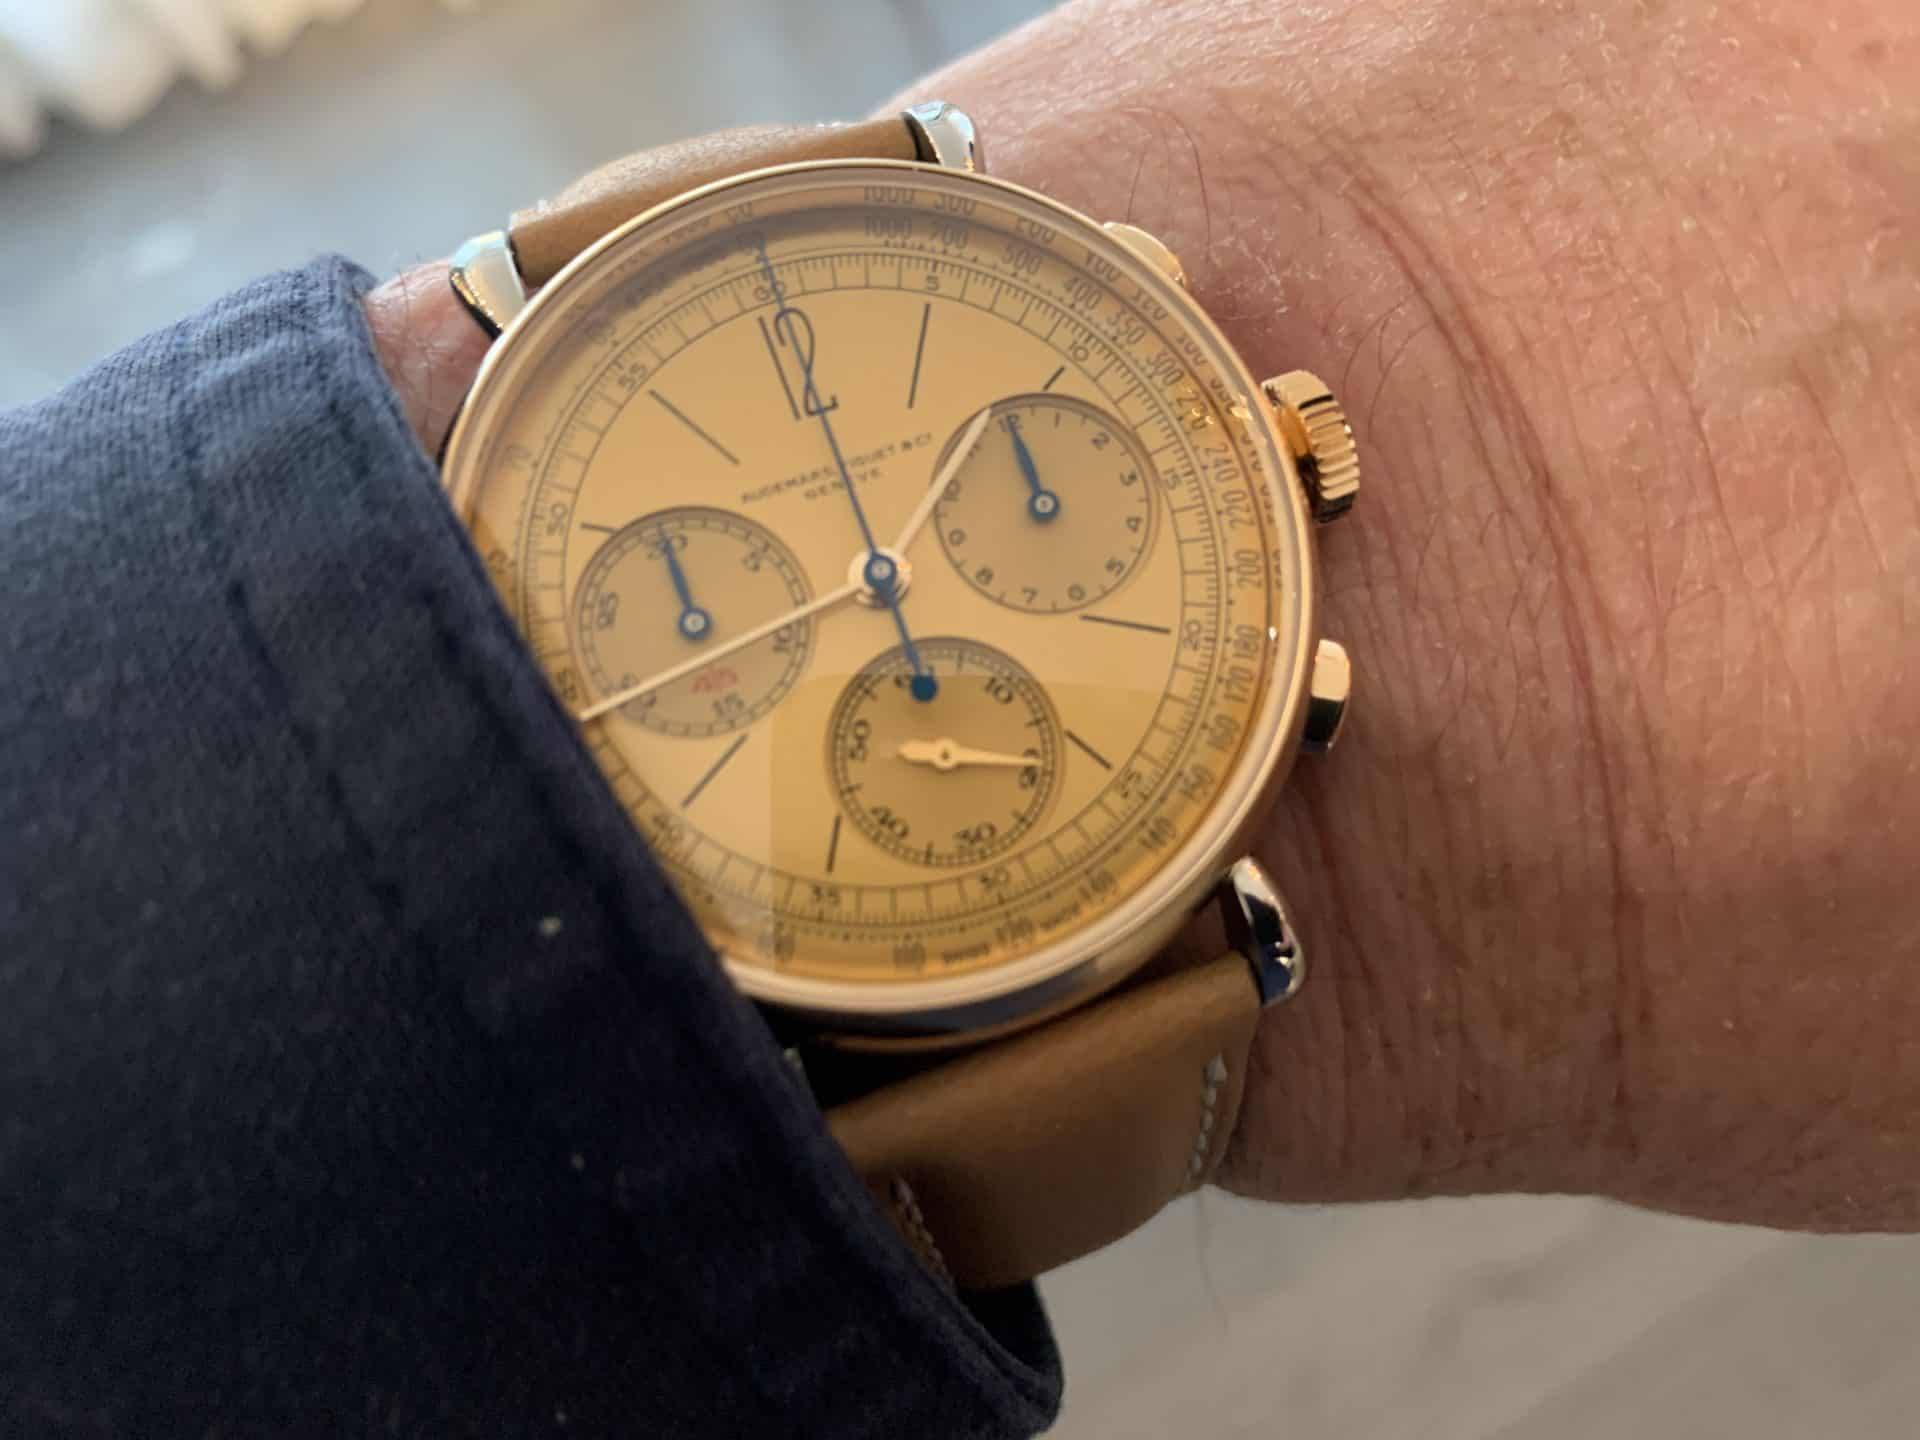 Audemars Piguet [Re]master01 Chronograph